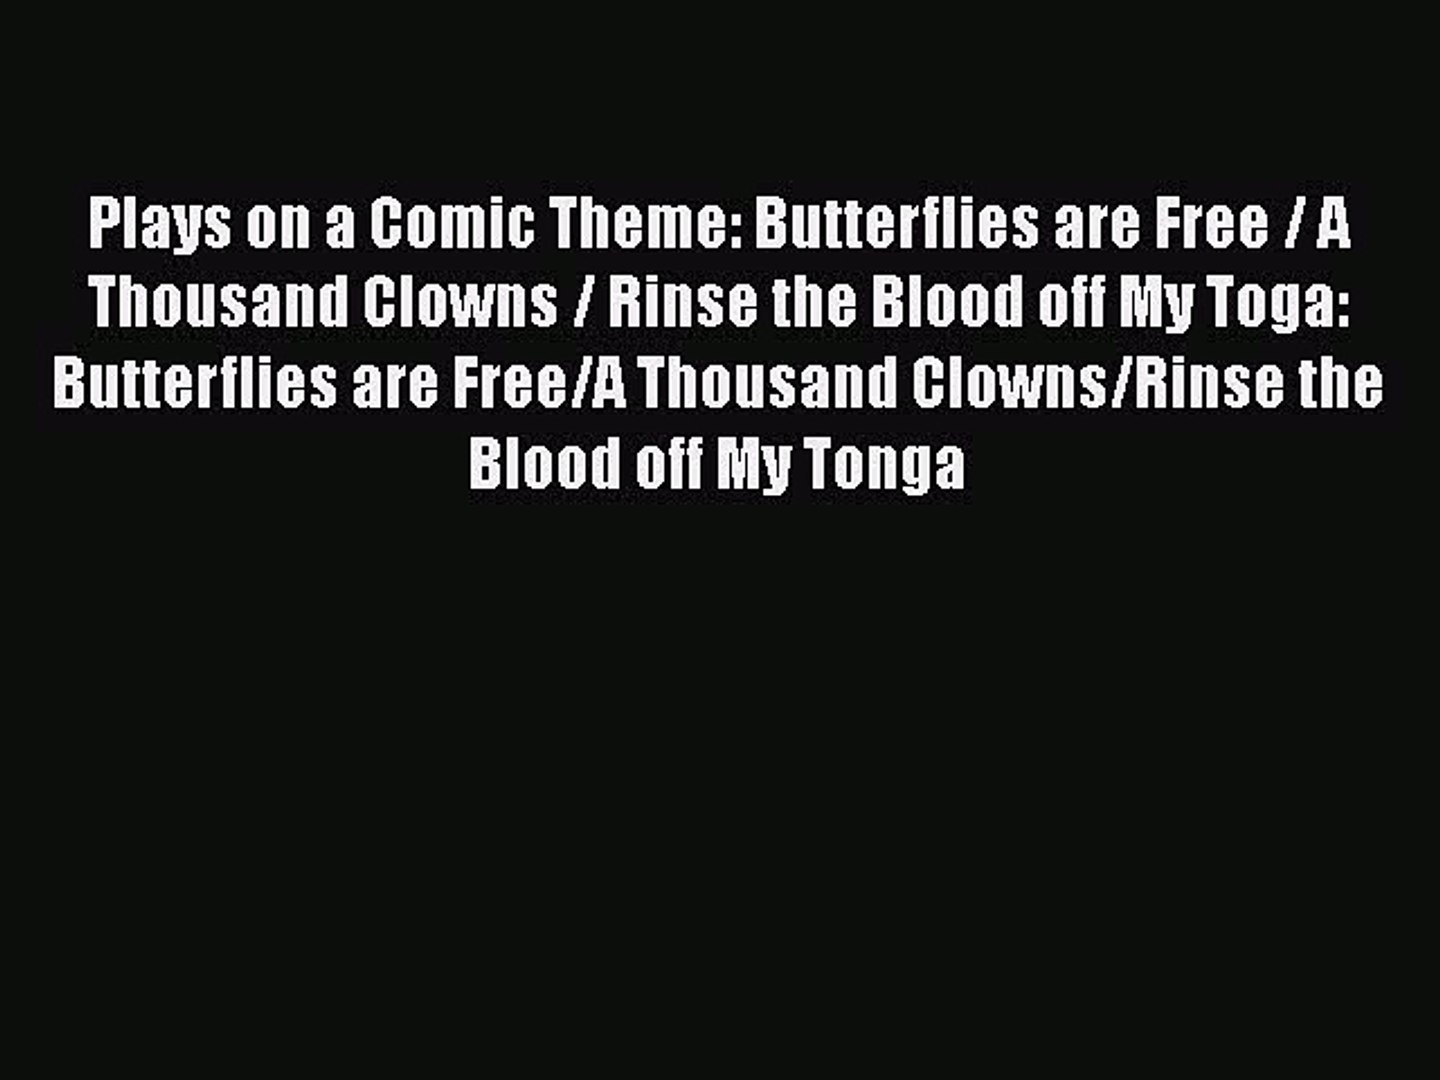 [PDF] Plays on a Comic Theme: Butterflies are Free / A Thousand Clowns / Rinse the Blood off